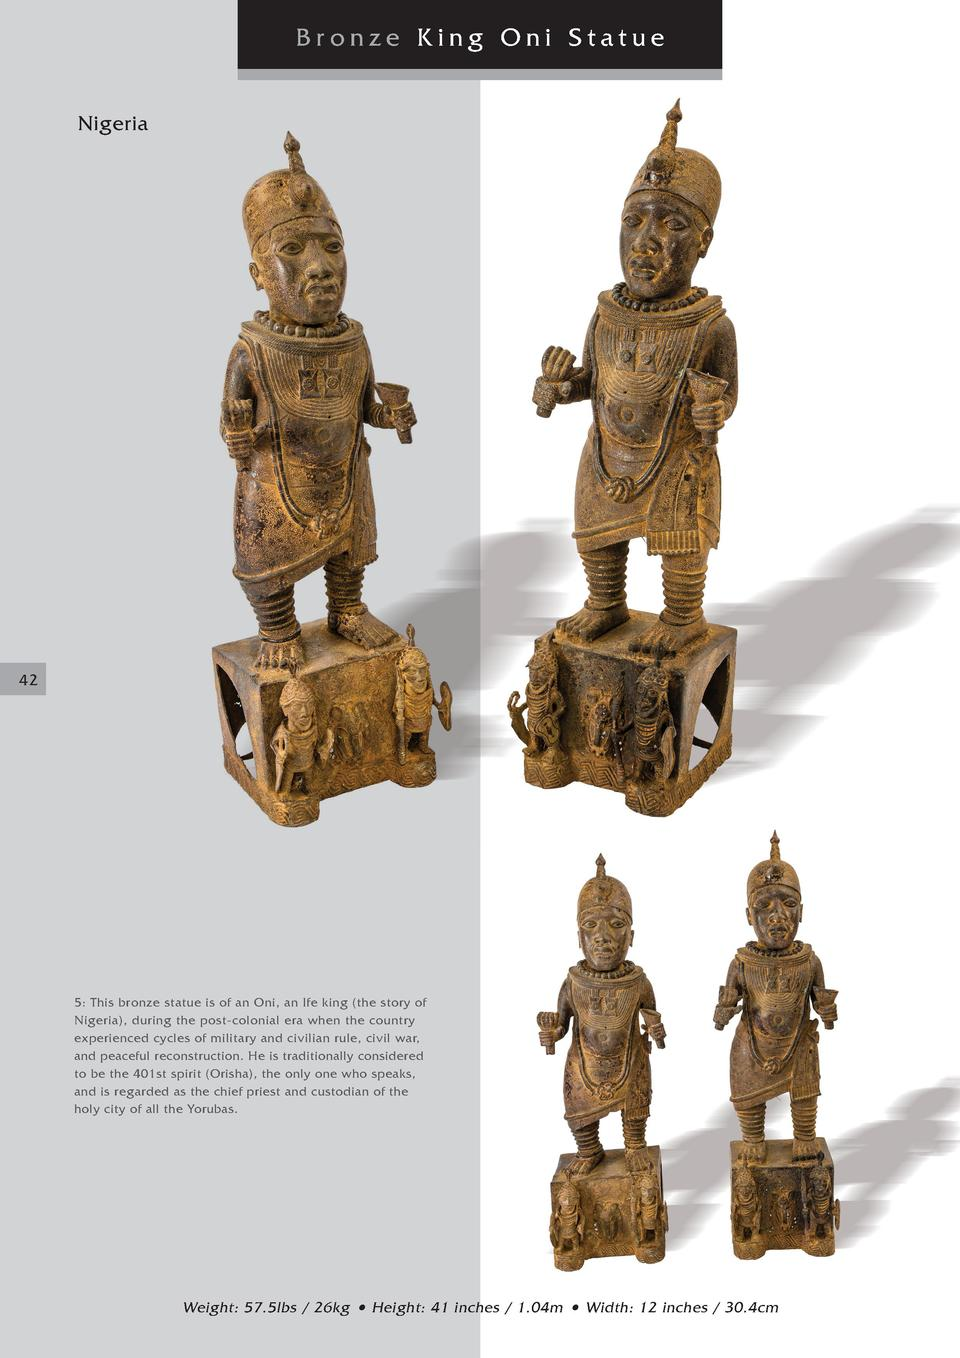 Bronze King Oni Statue Nigeria  42  5  This bronze statue is of an Oni, an Ife king  the story of Nigeria , during the pos...